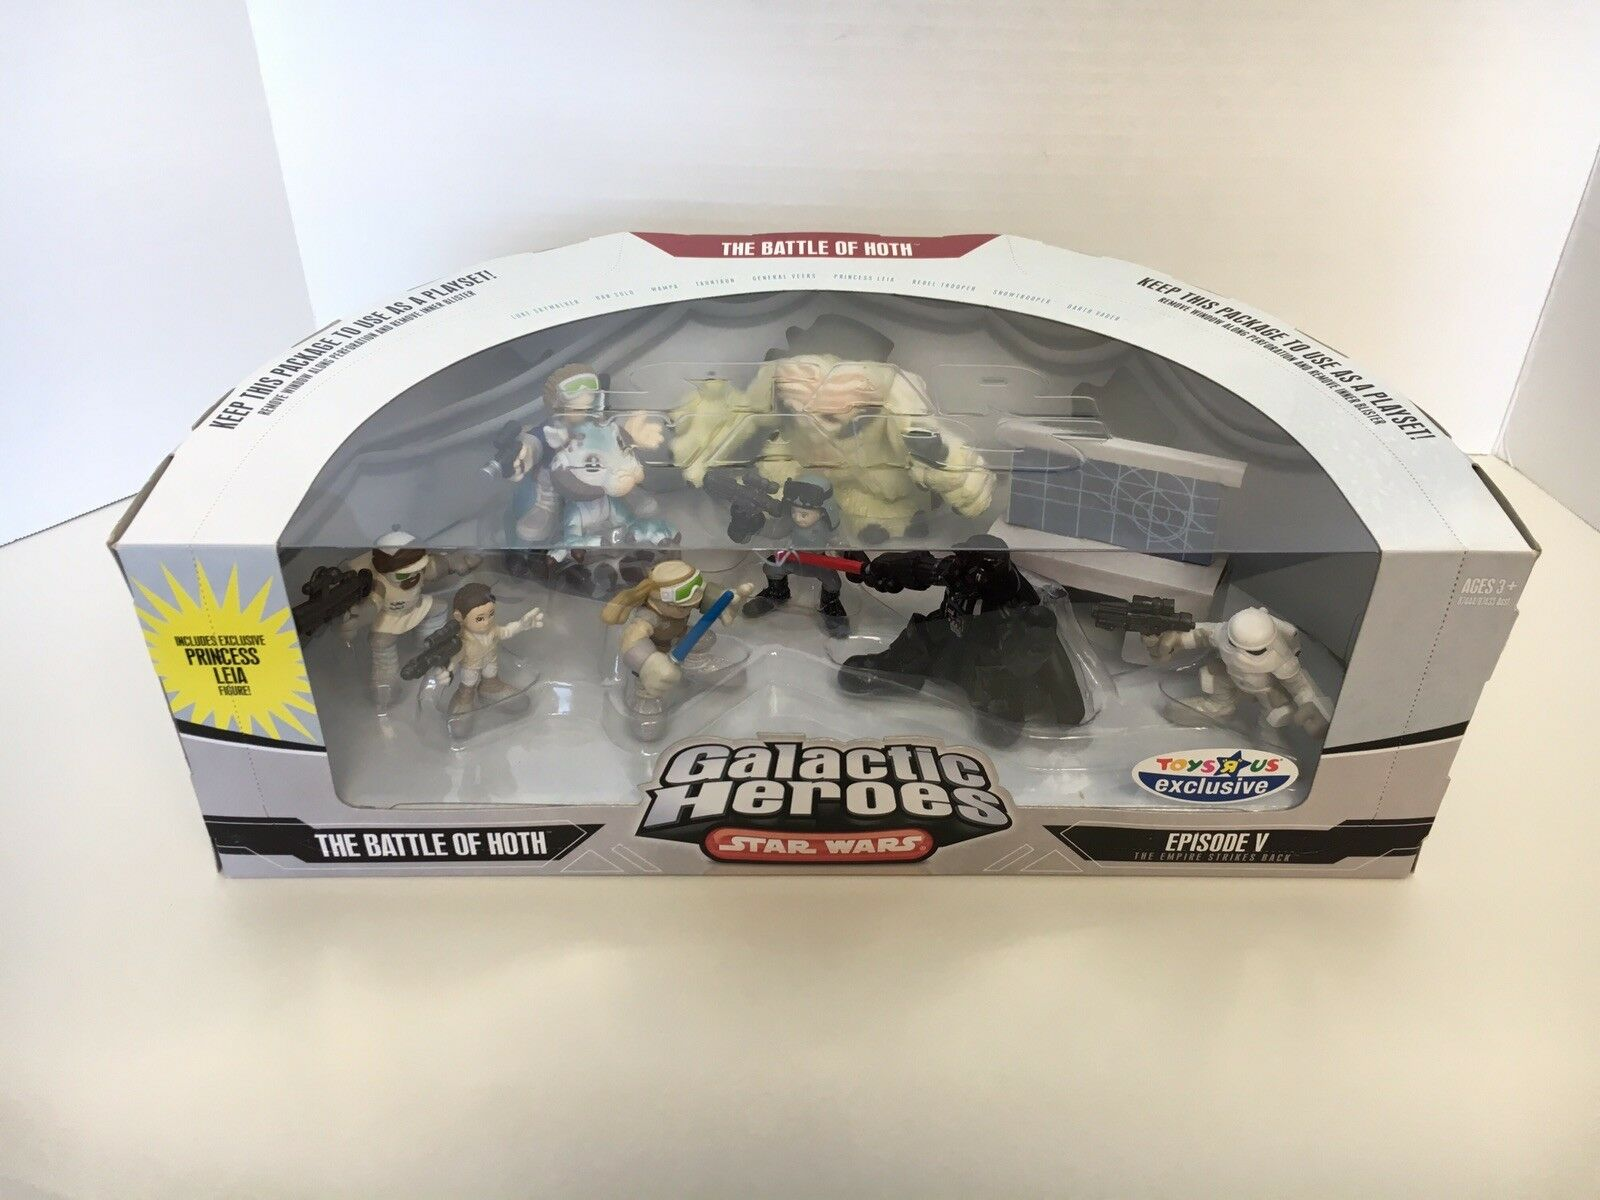 Star Wars Galactic Heroes THE BATTLE OF HOTH Toys R Us Exclusive Episode V NEW